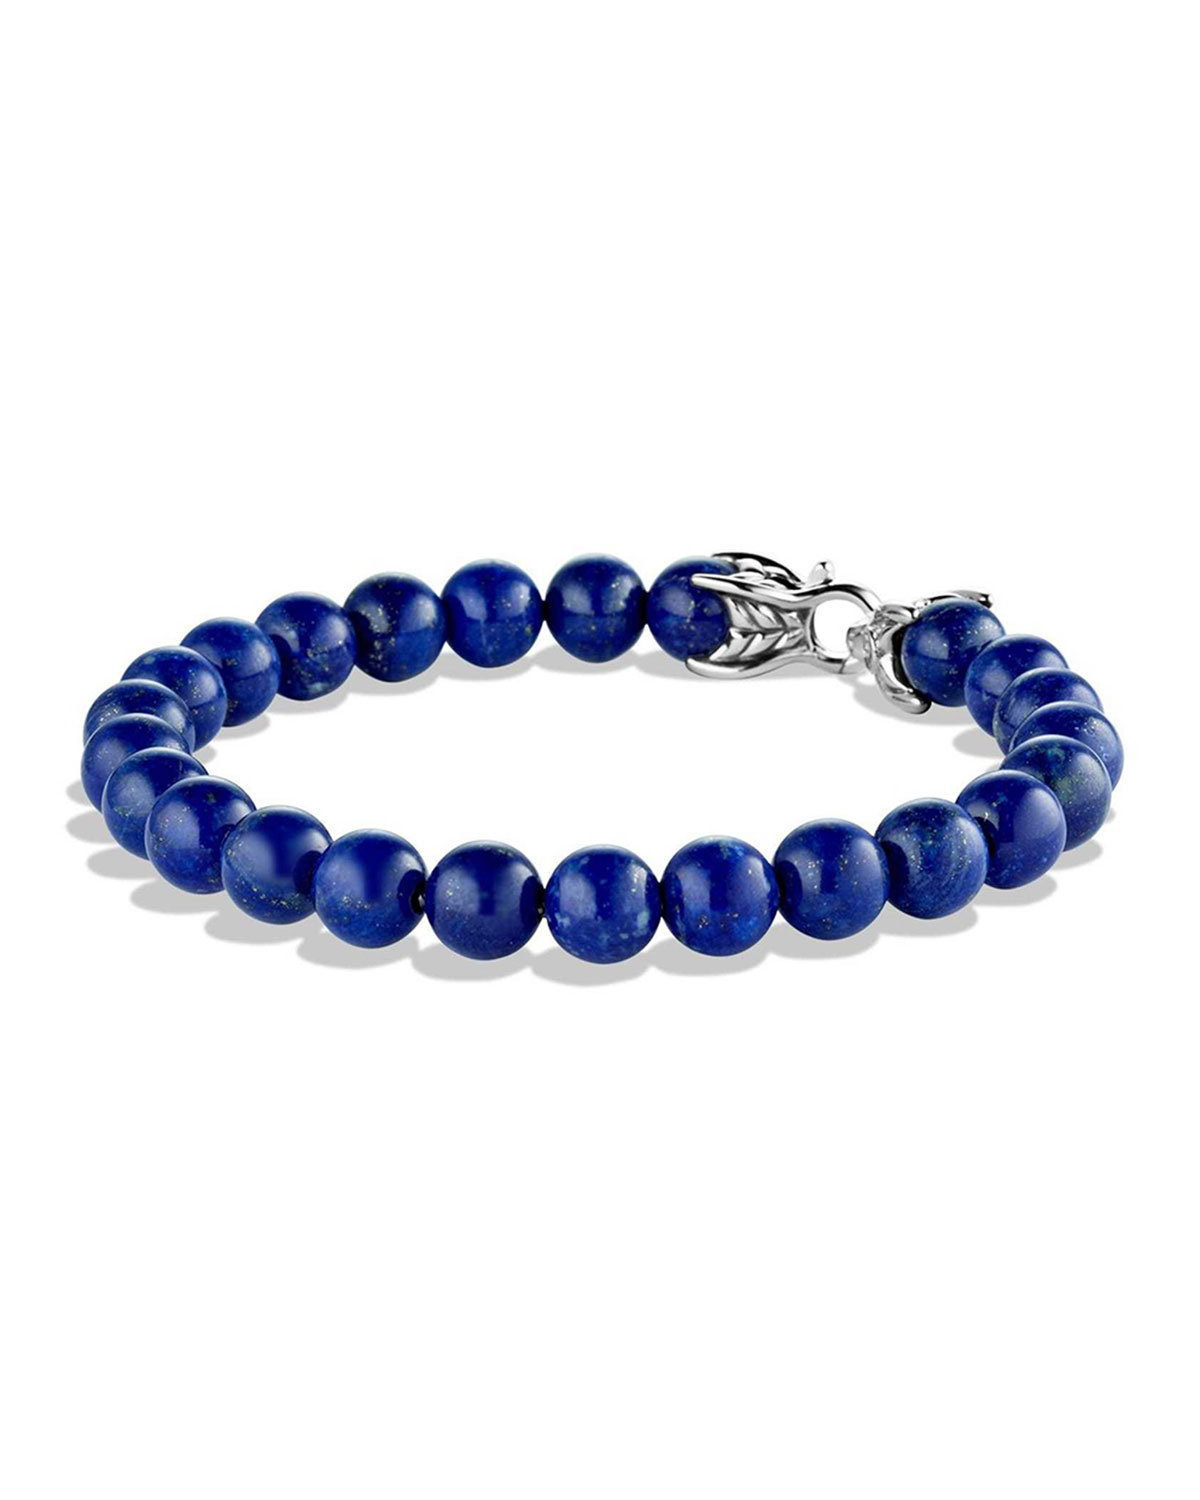 David Yurman Spiritual Beads Bracelet With Lapis Lazuli, 8mm In Bla